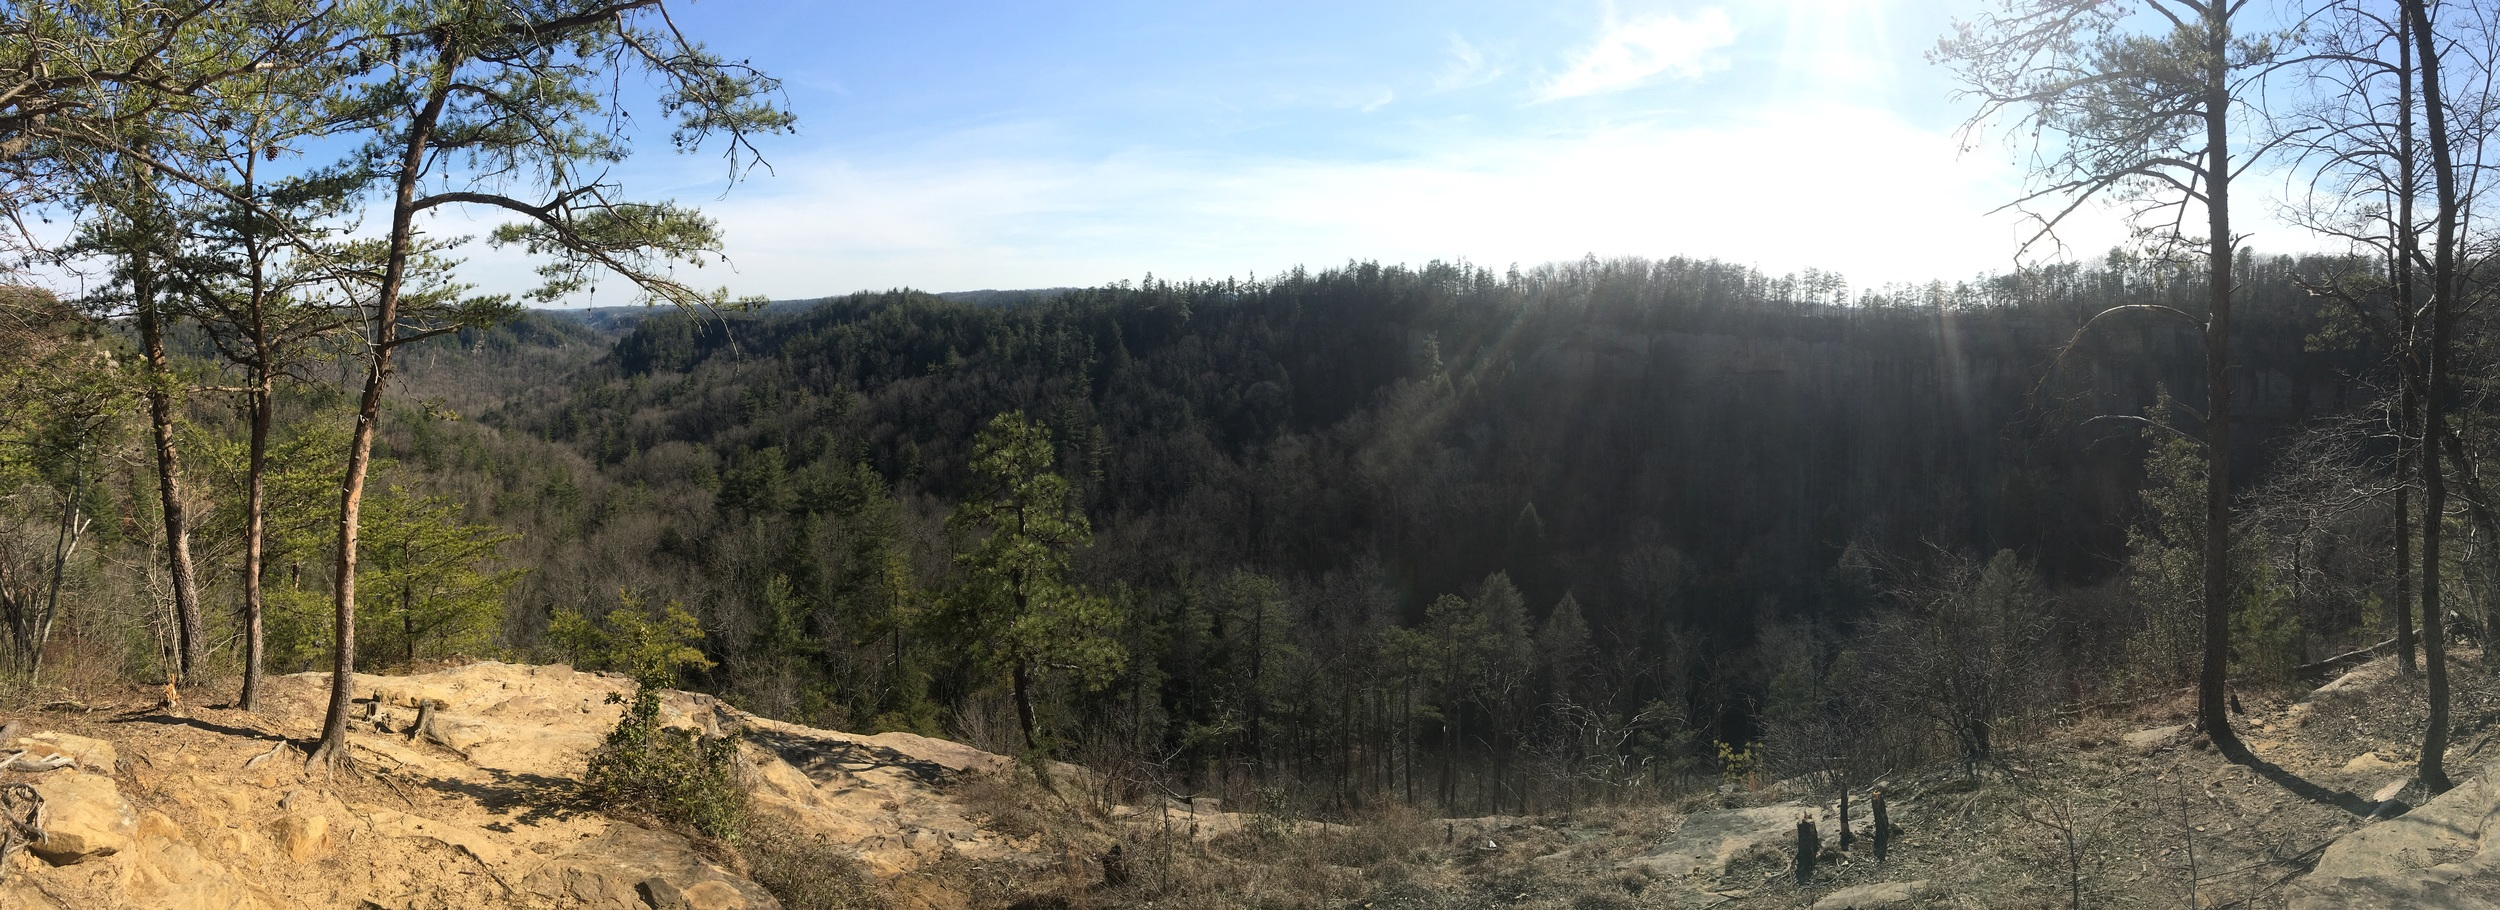 Spring Break-Red River Gorge